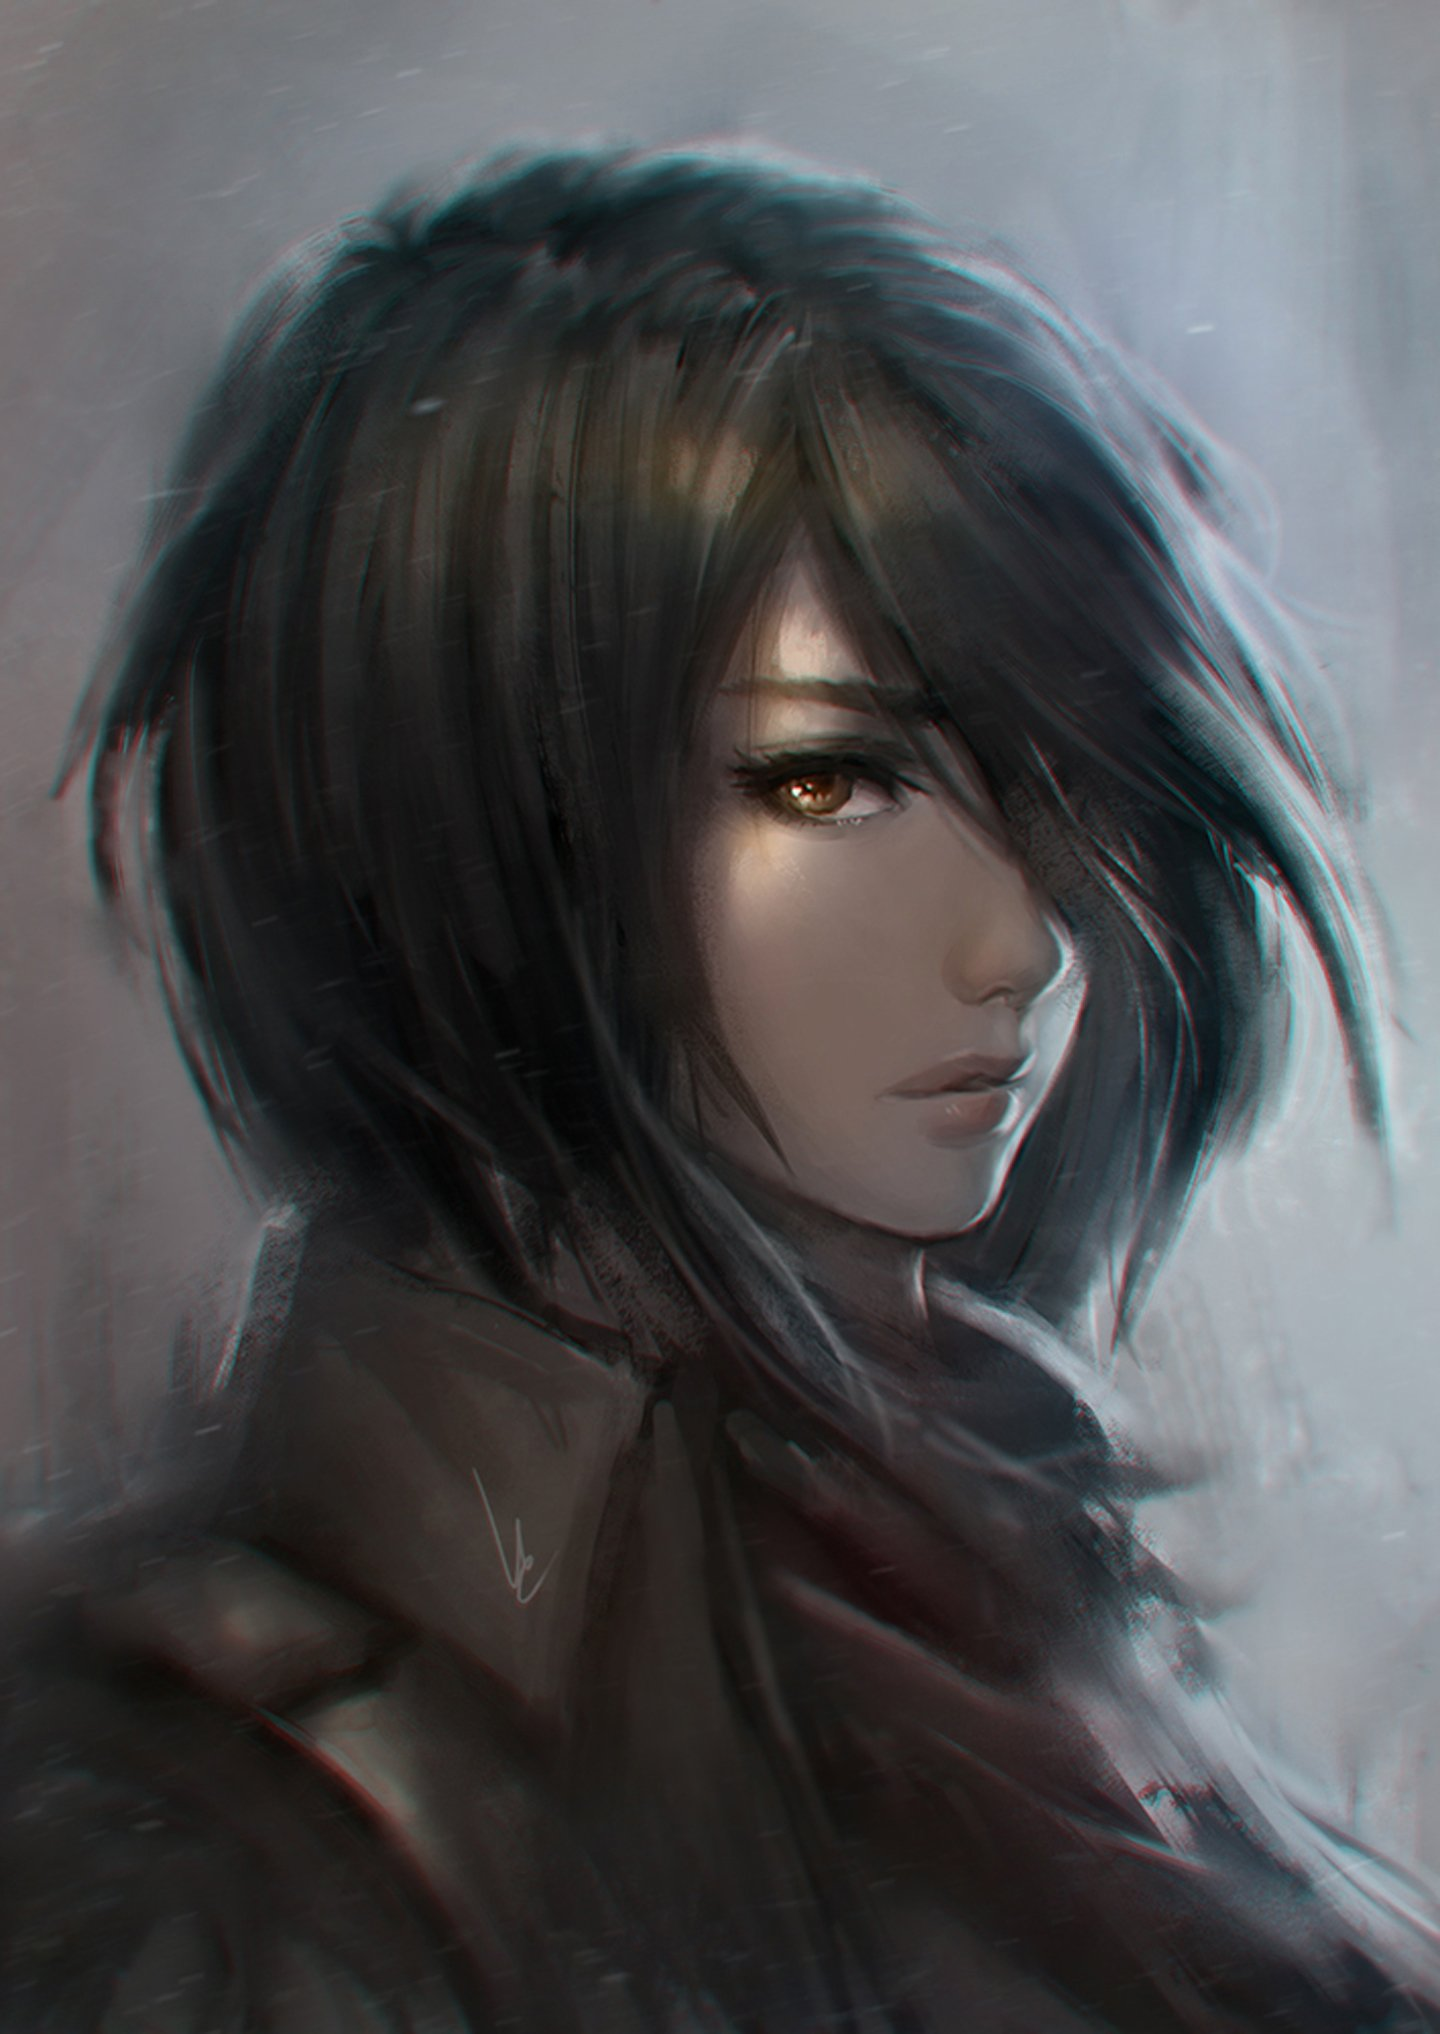 Anime Characters Popular : Anime series character girl short hair wallpaper